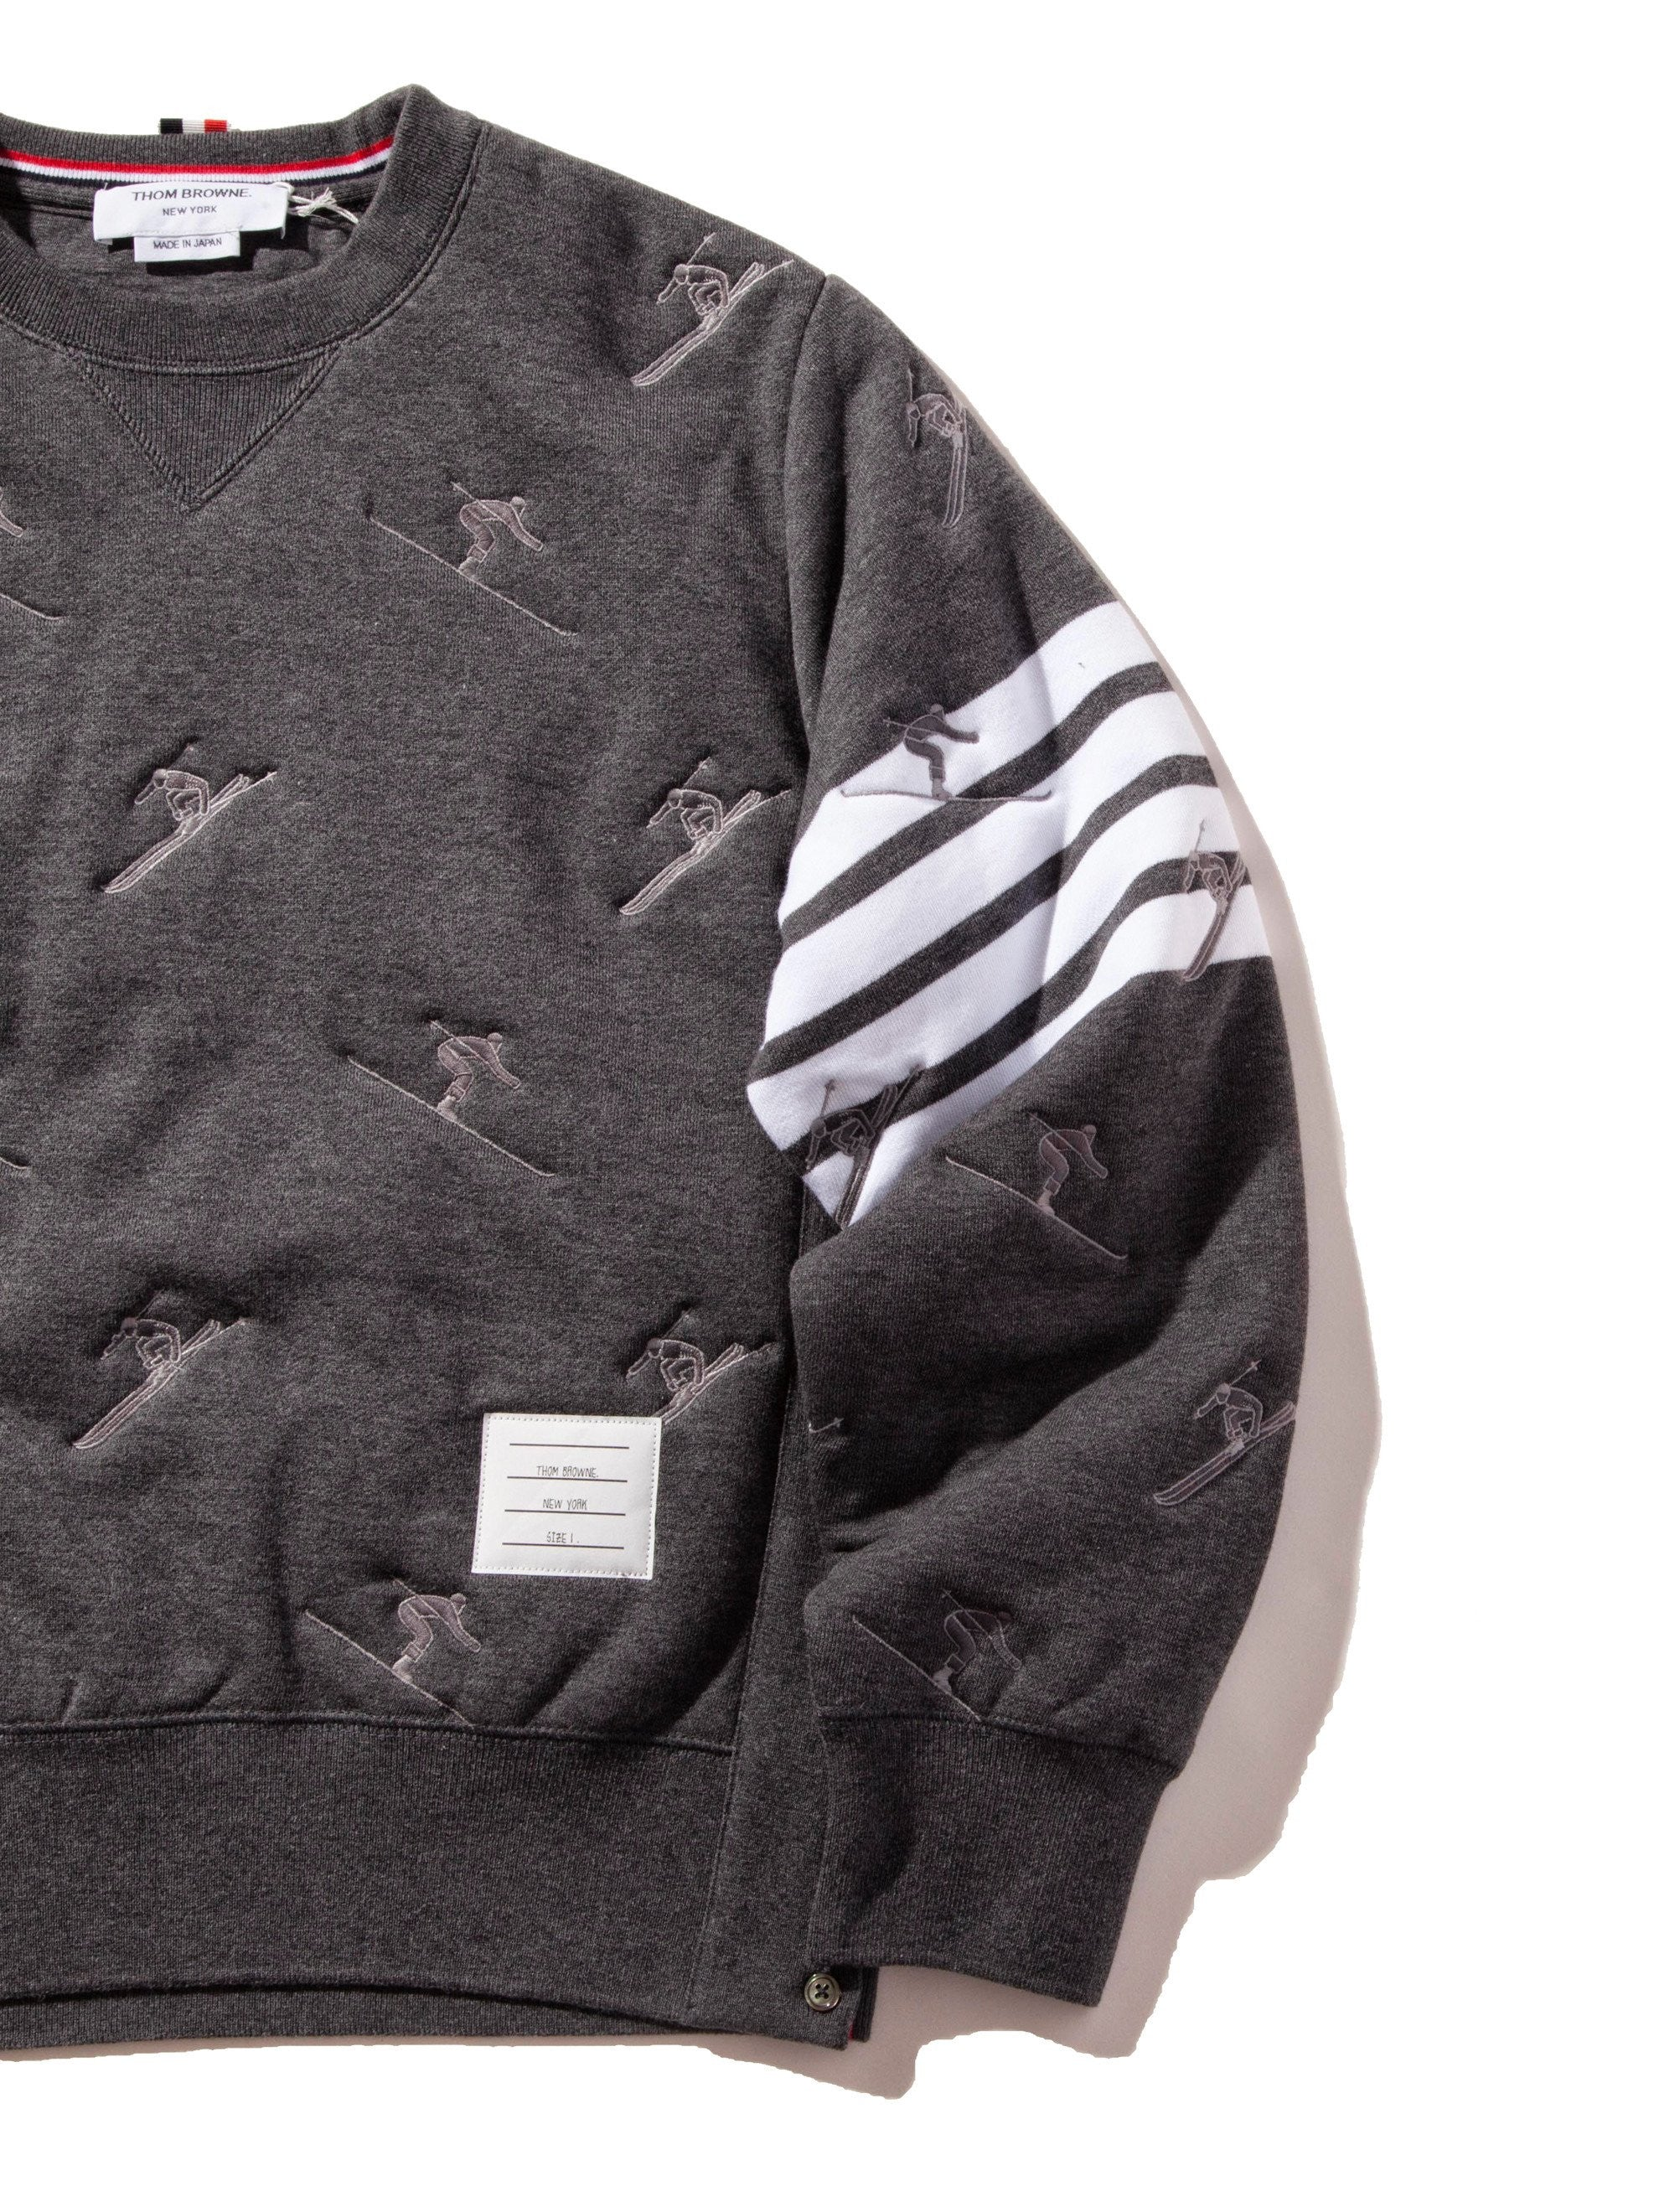 Dark Grey Classic Sweatshirt (Quilted Classic Loopback/Skier Icon Embroidery) 6